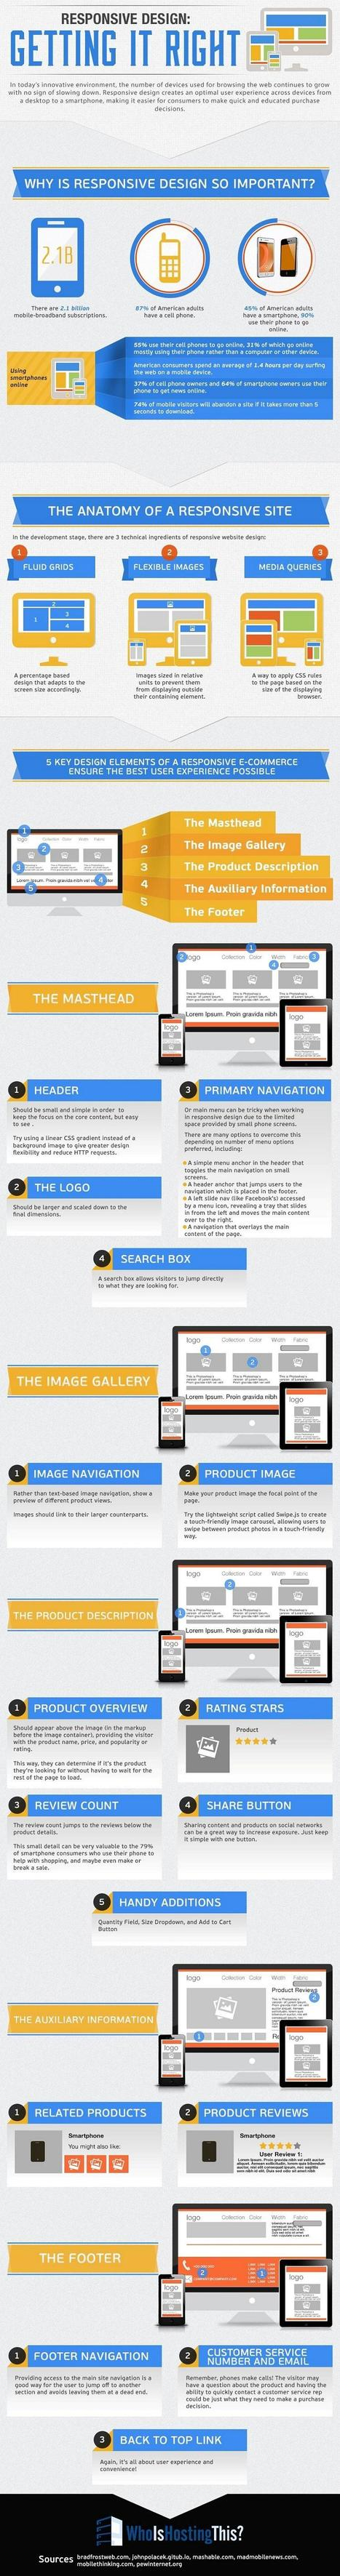 How to Do Responsive Web Design Right [Infographic] | Front-end | Scoop.it